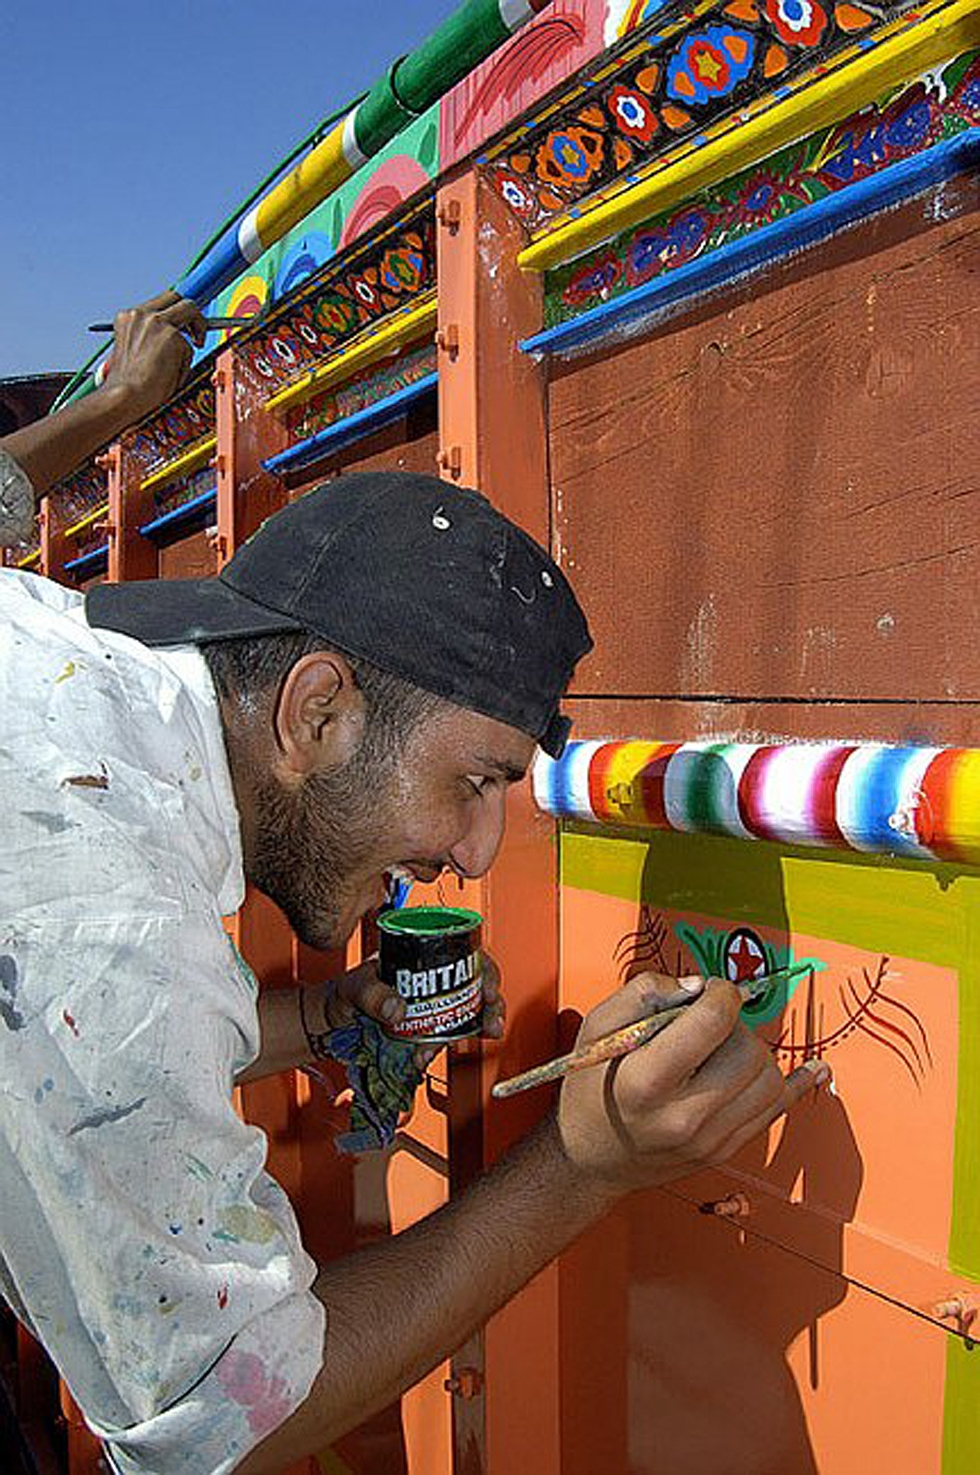 A fully decorated truck may take up to 10 weeks to be completed. (Peter Grant)